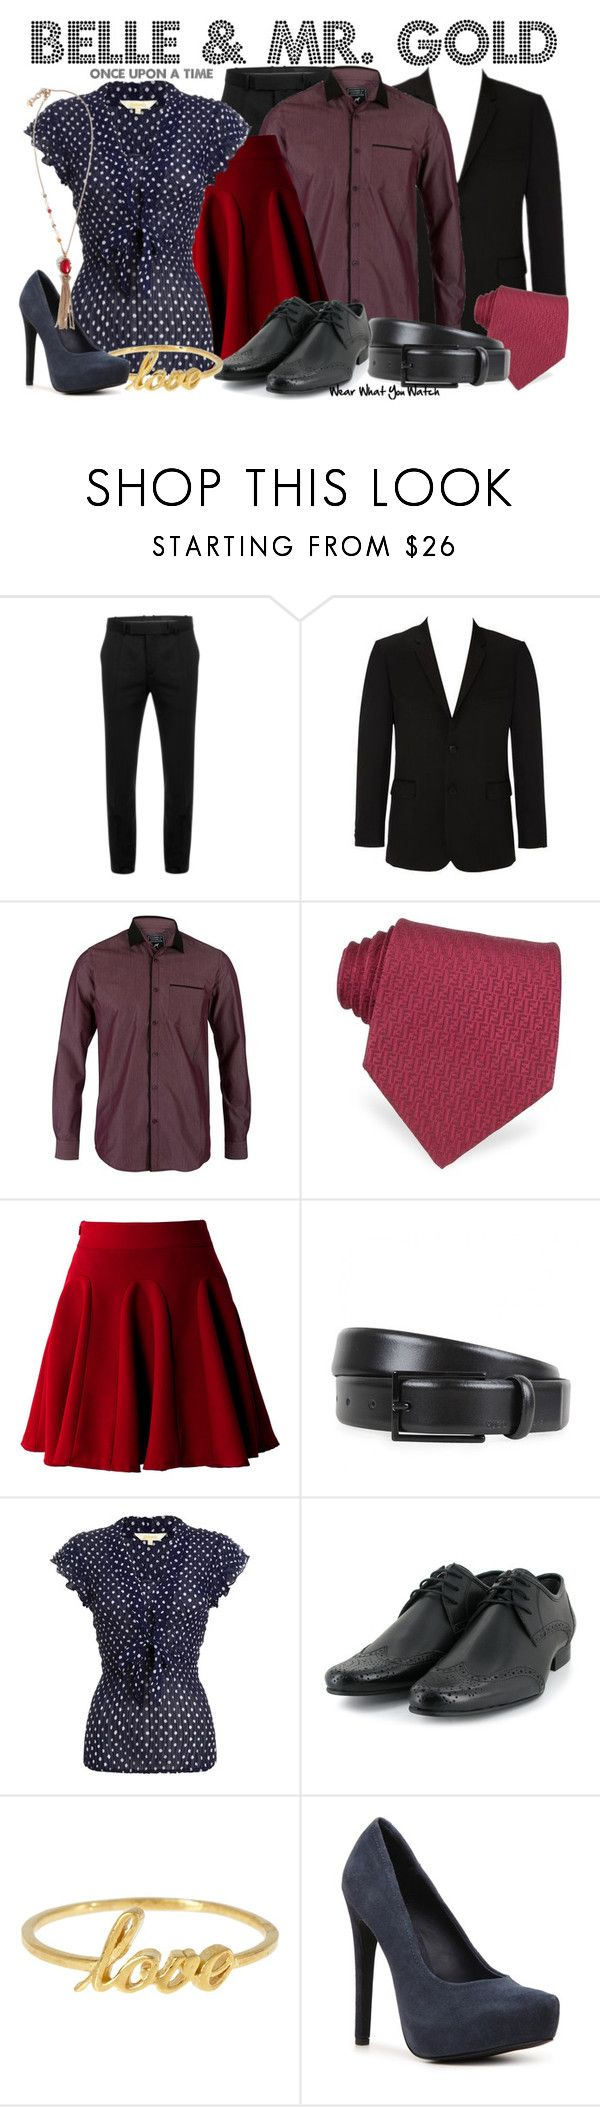 Once Upon a Time by wearwhatyouwatch on Polyvore featuring moda, John Lewis, Vegetarian Shoes, Kelsi Dagger Brooklyn, Alex Monroe, Lucky Brand, HUGO, Fendi, Alexander McQueen and ruffle blouses